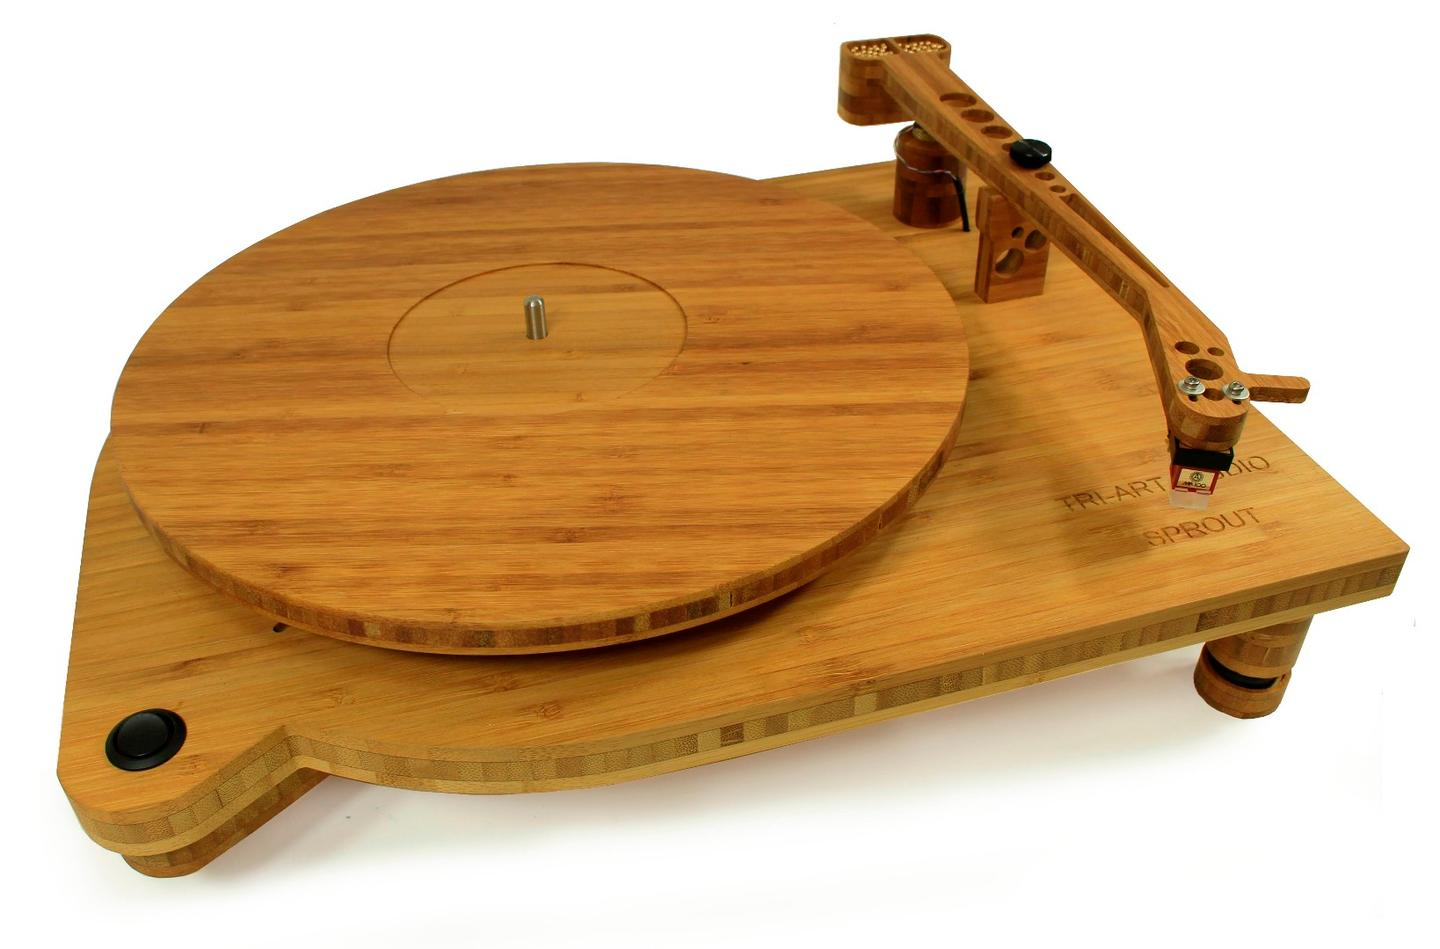 The Sprout TA-0.5 turntable's platter, plinth, feet and tonearm are all made from bamboo